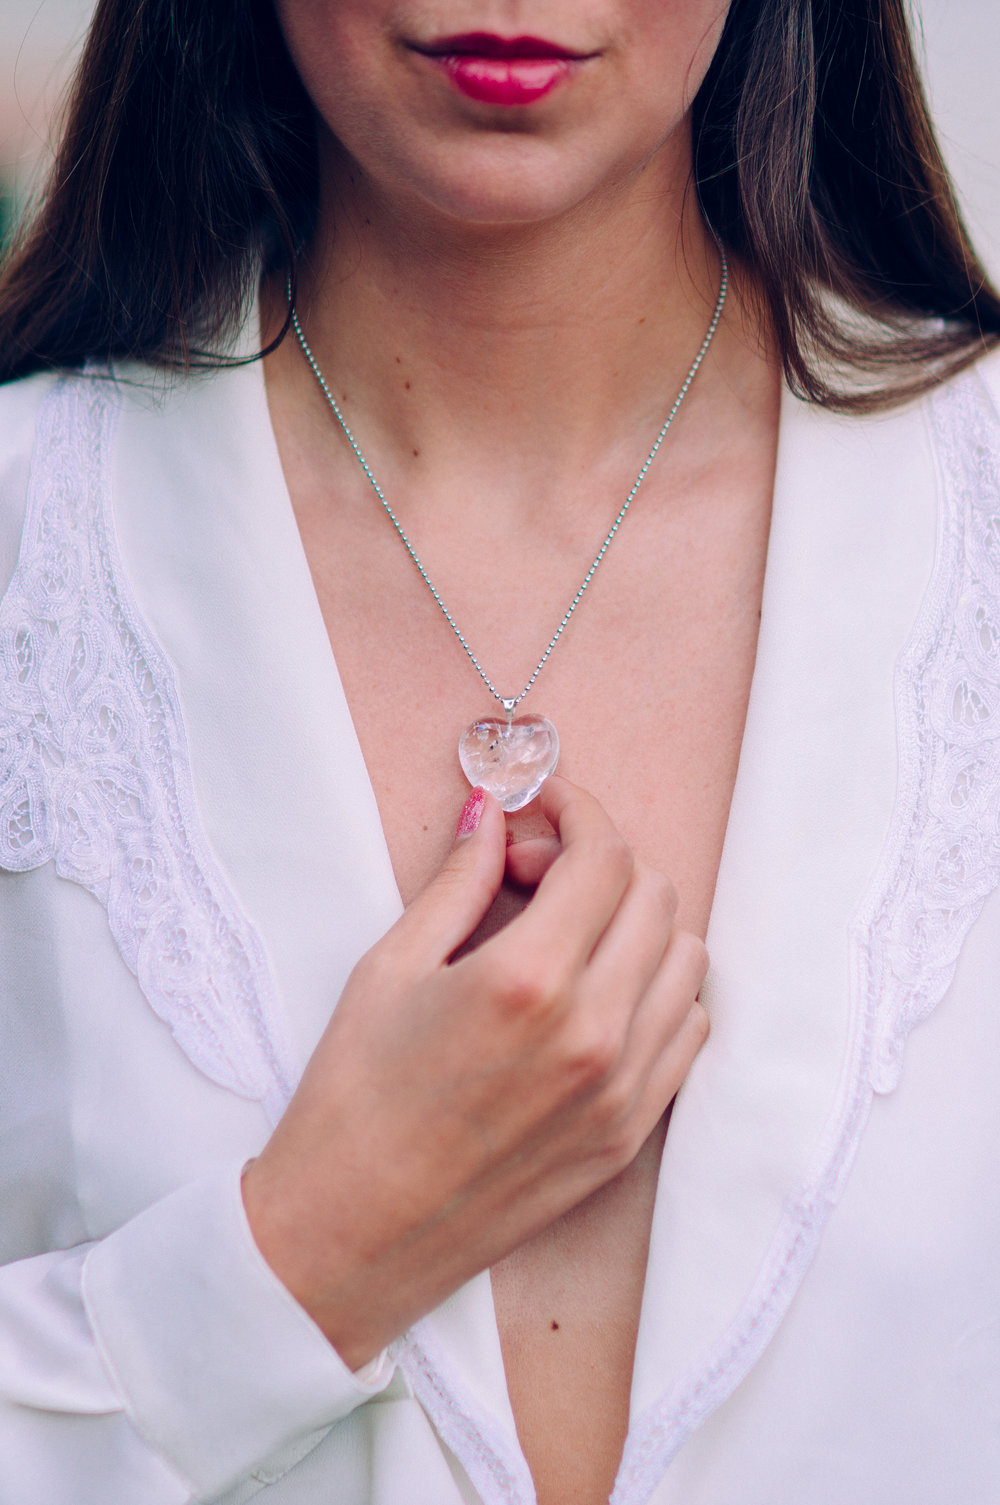 mw-puffyHeartNecklace-quartz-lookbook-1.jpg